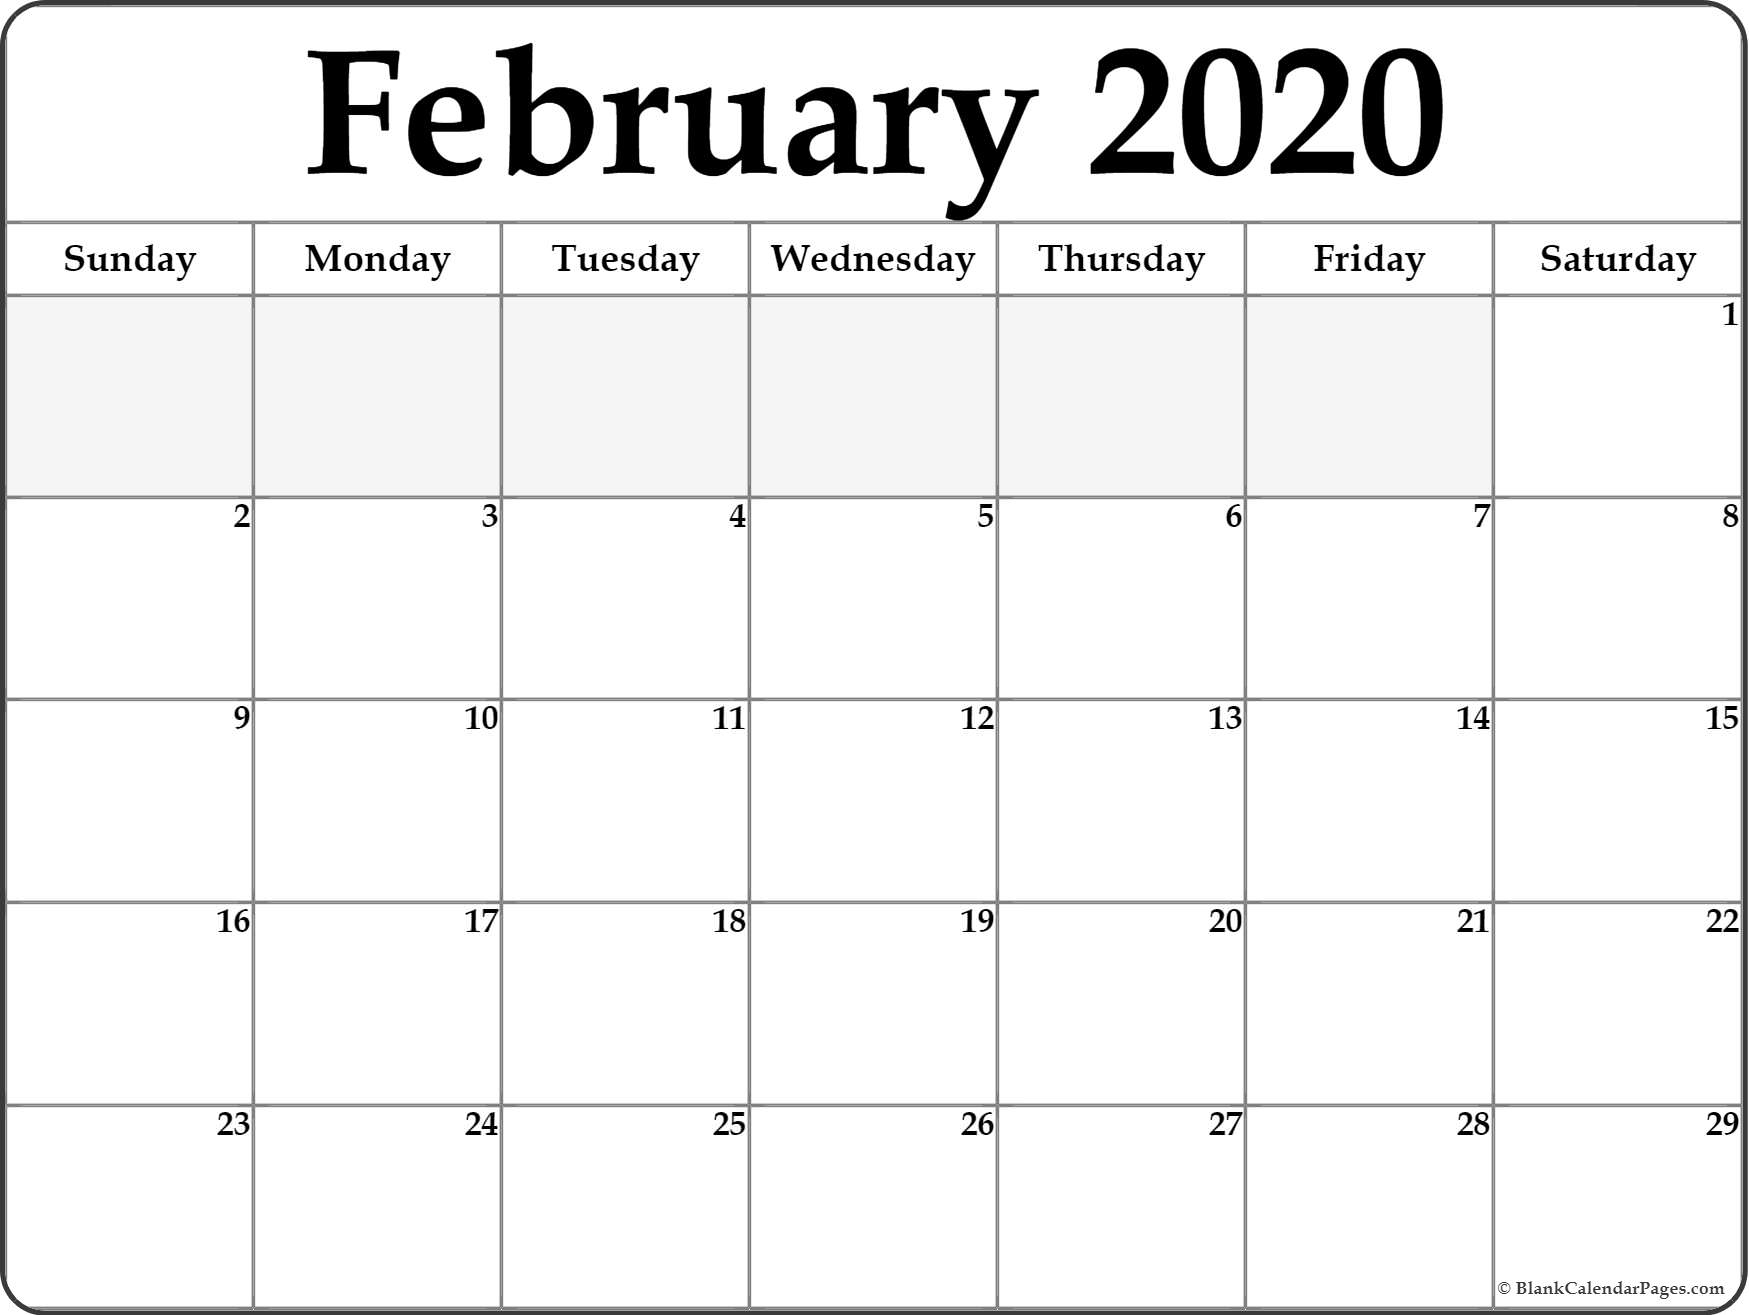 February 2020 Calendar | Free Printable Monthly Calendars with February 2020 Daily Calendar